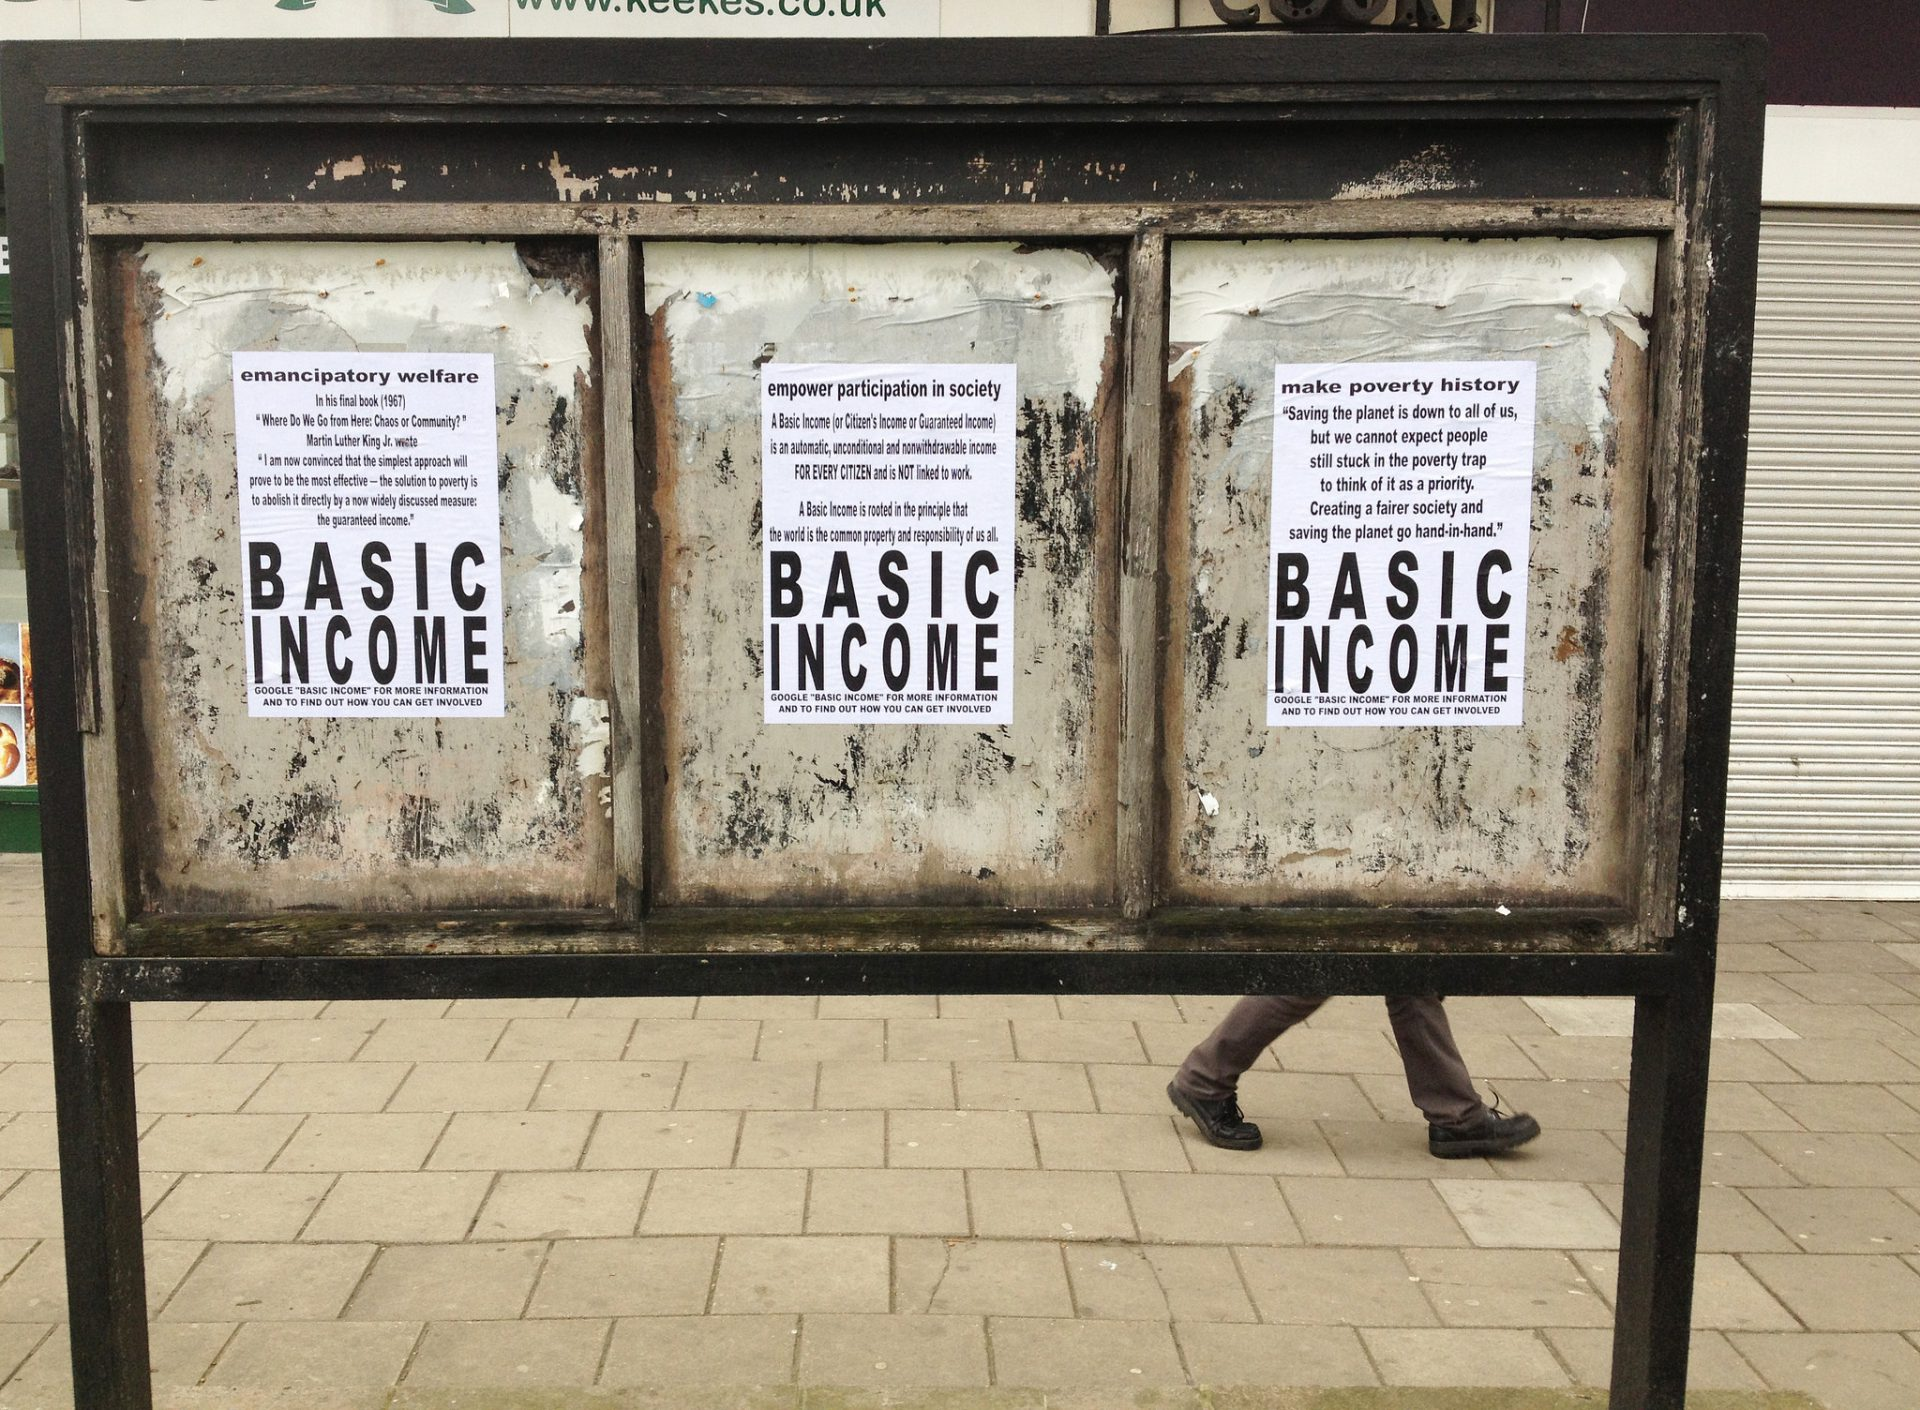 Getting to the heart of Universal Basic Income